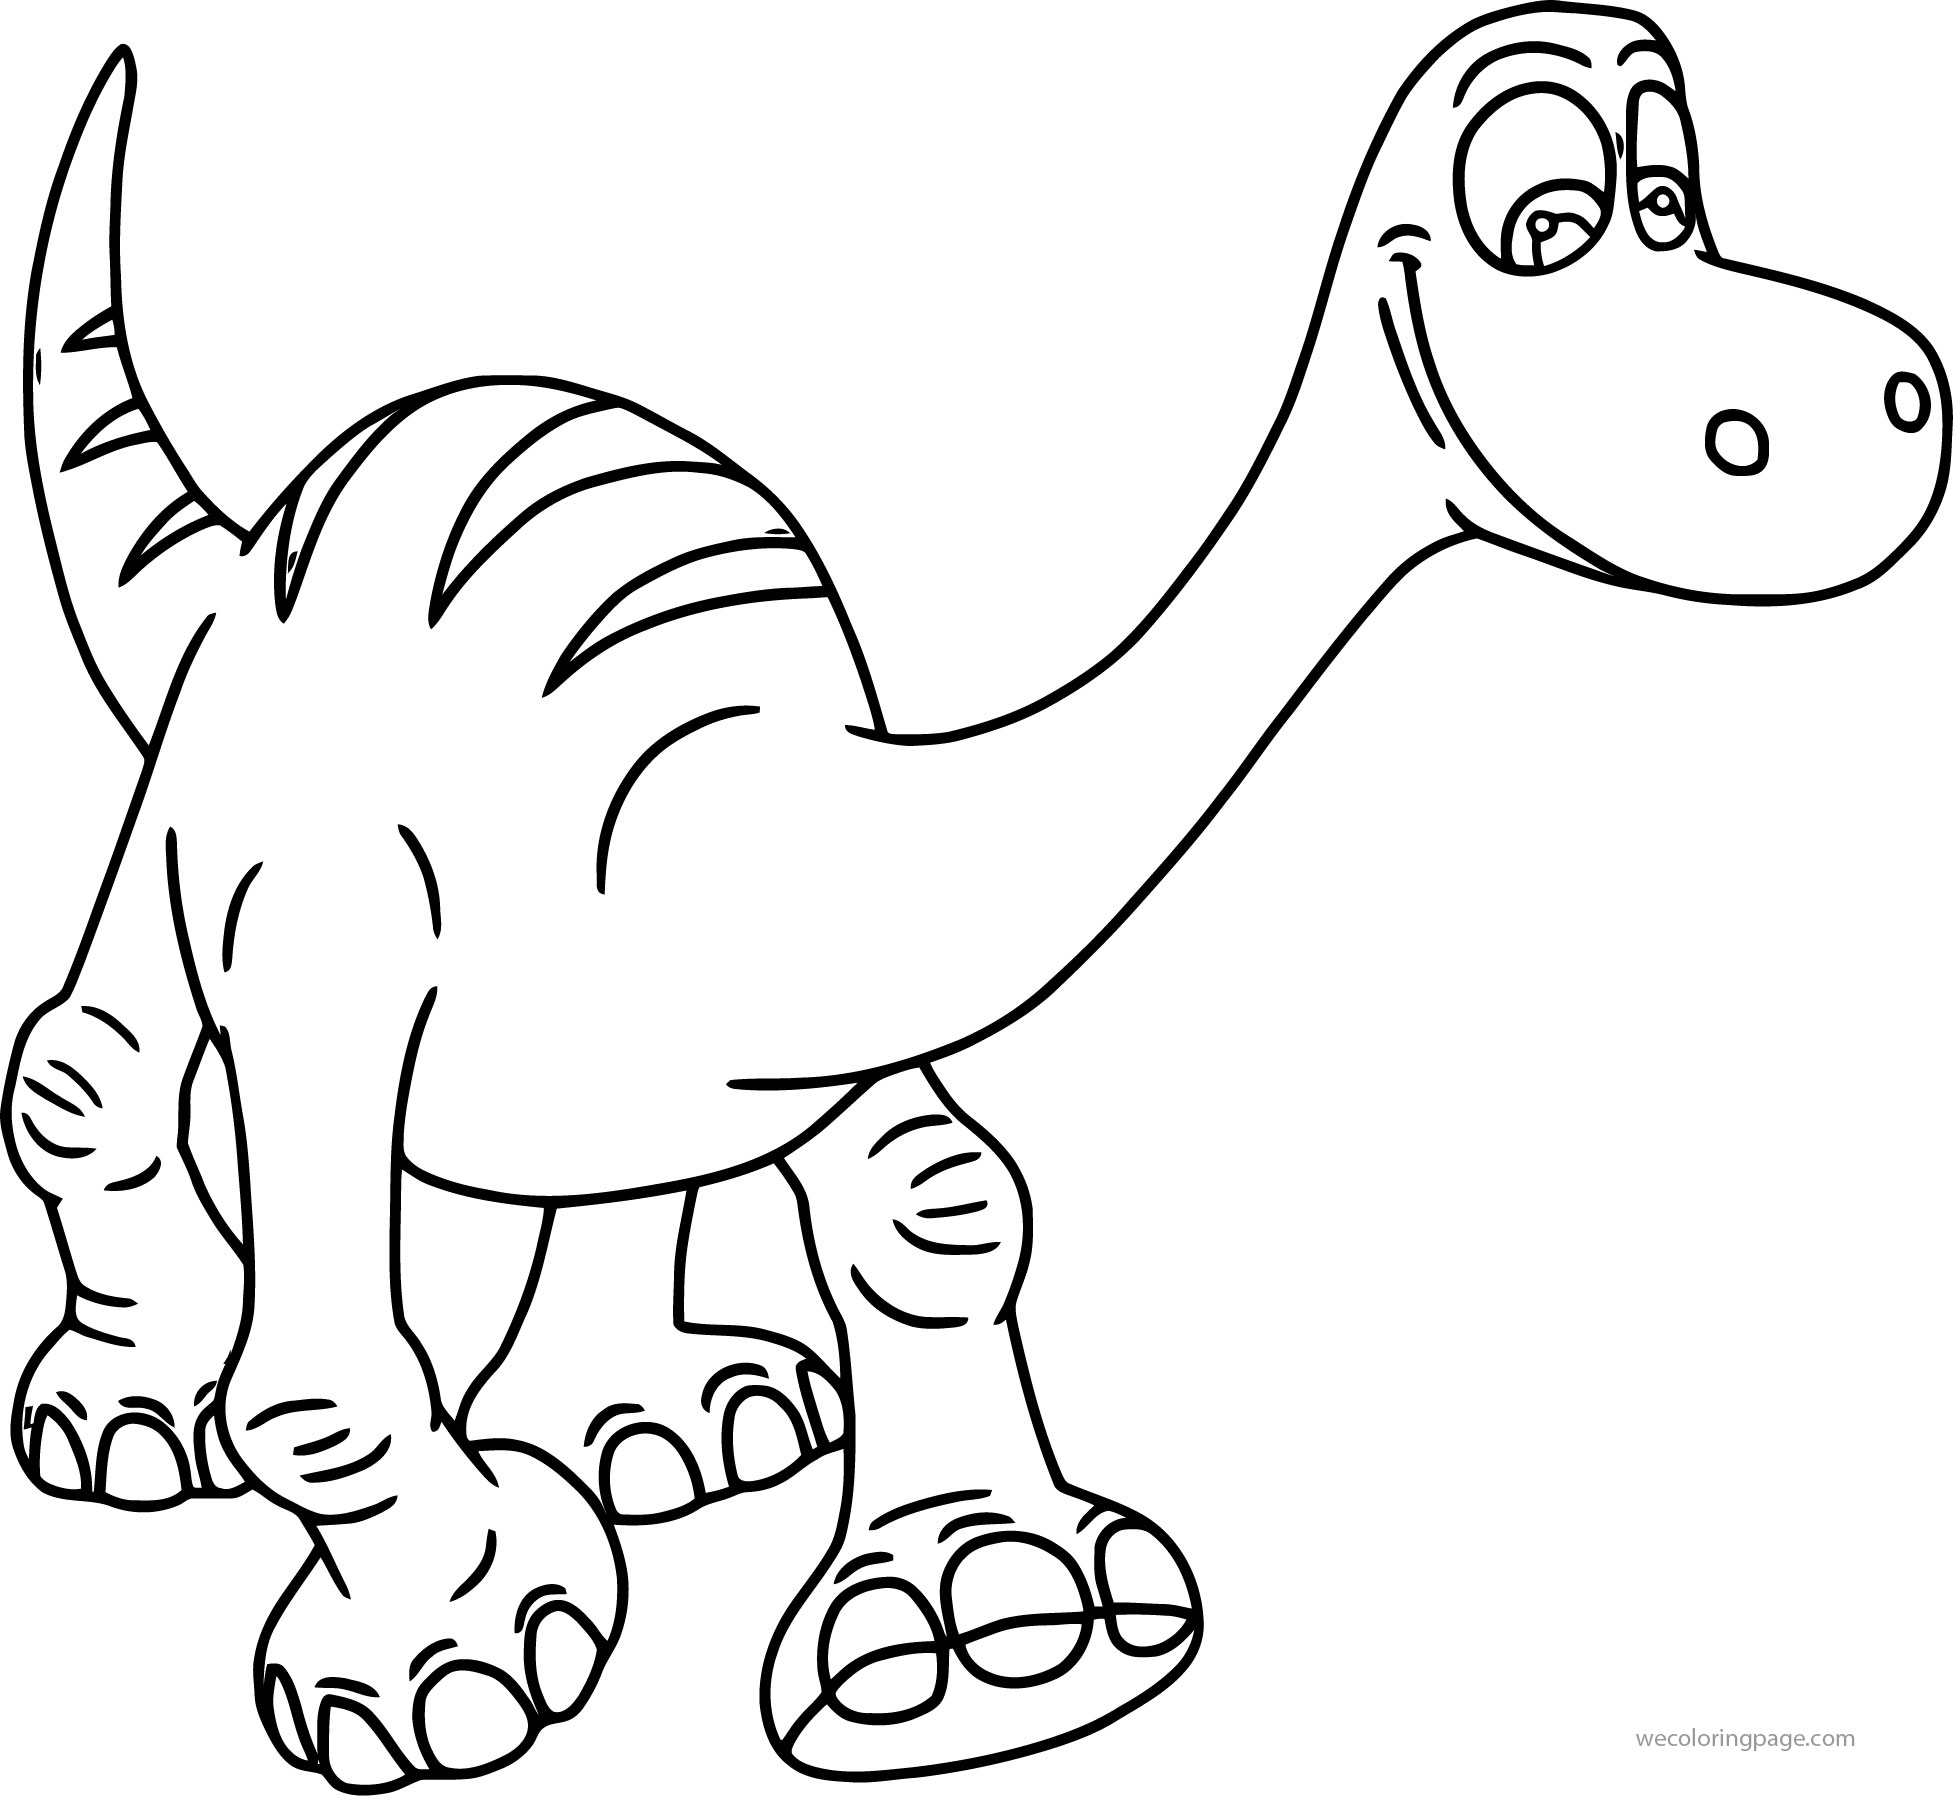 the good dinosaur disney coloring pages wecoloringpage